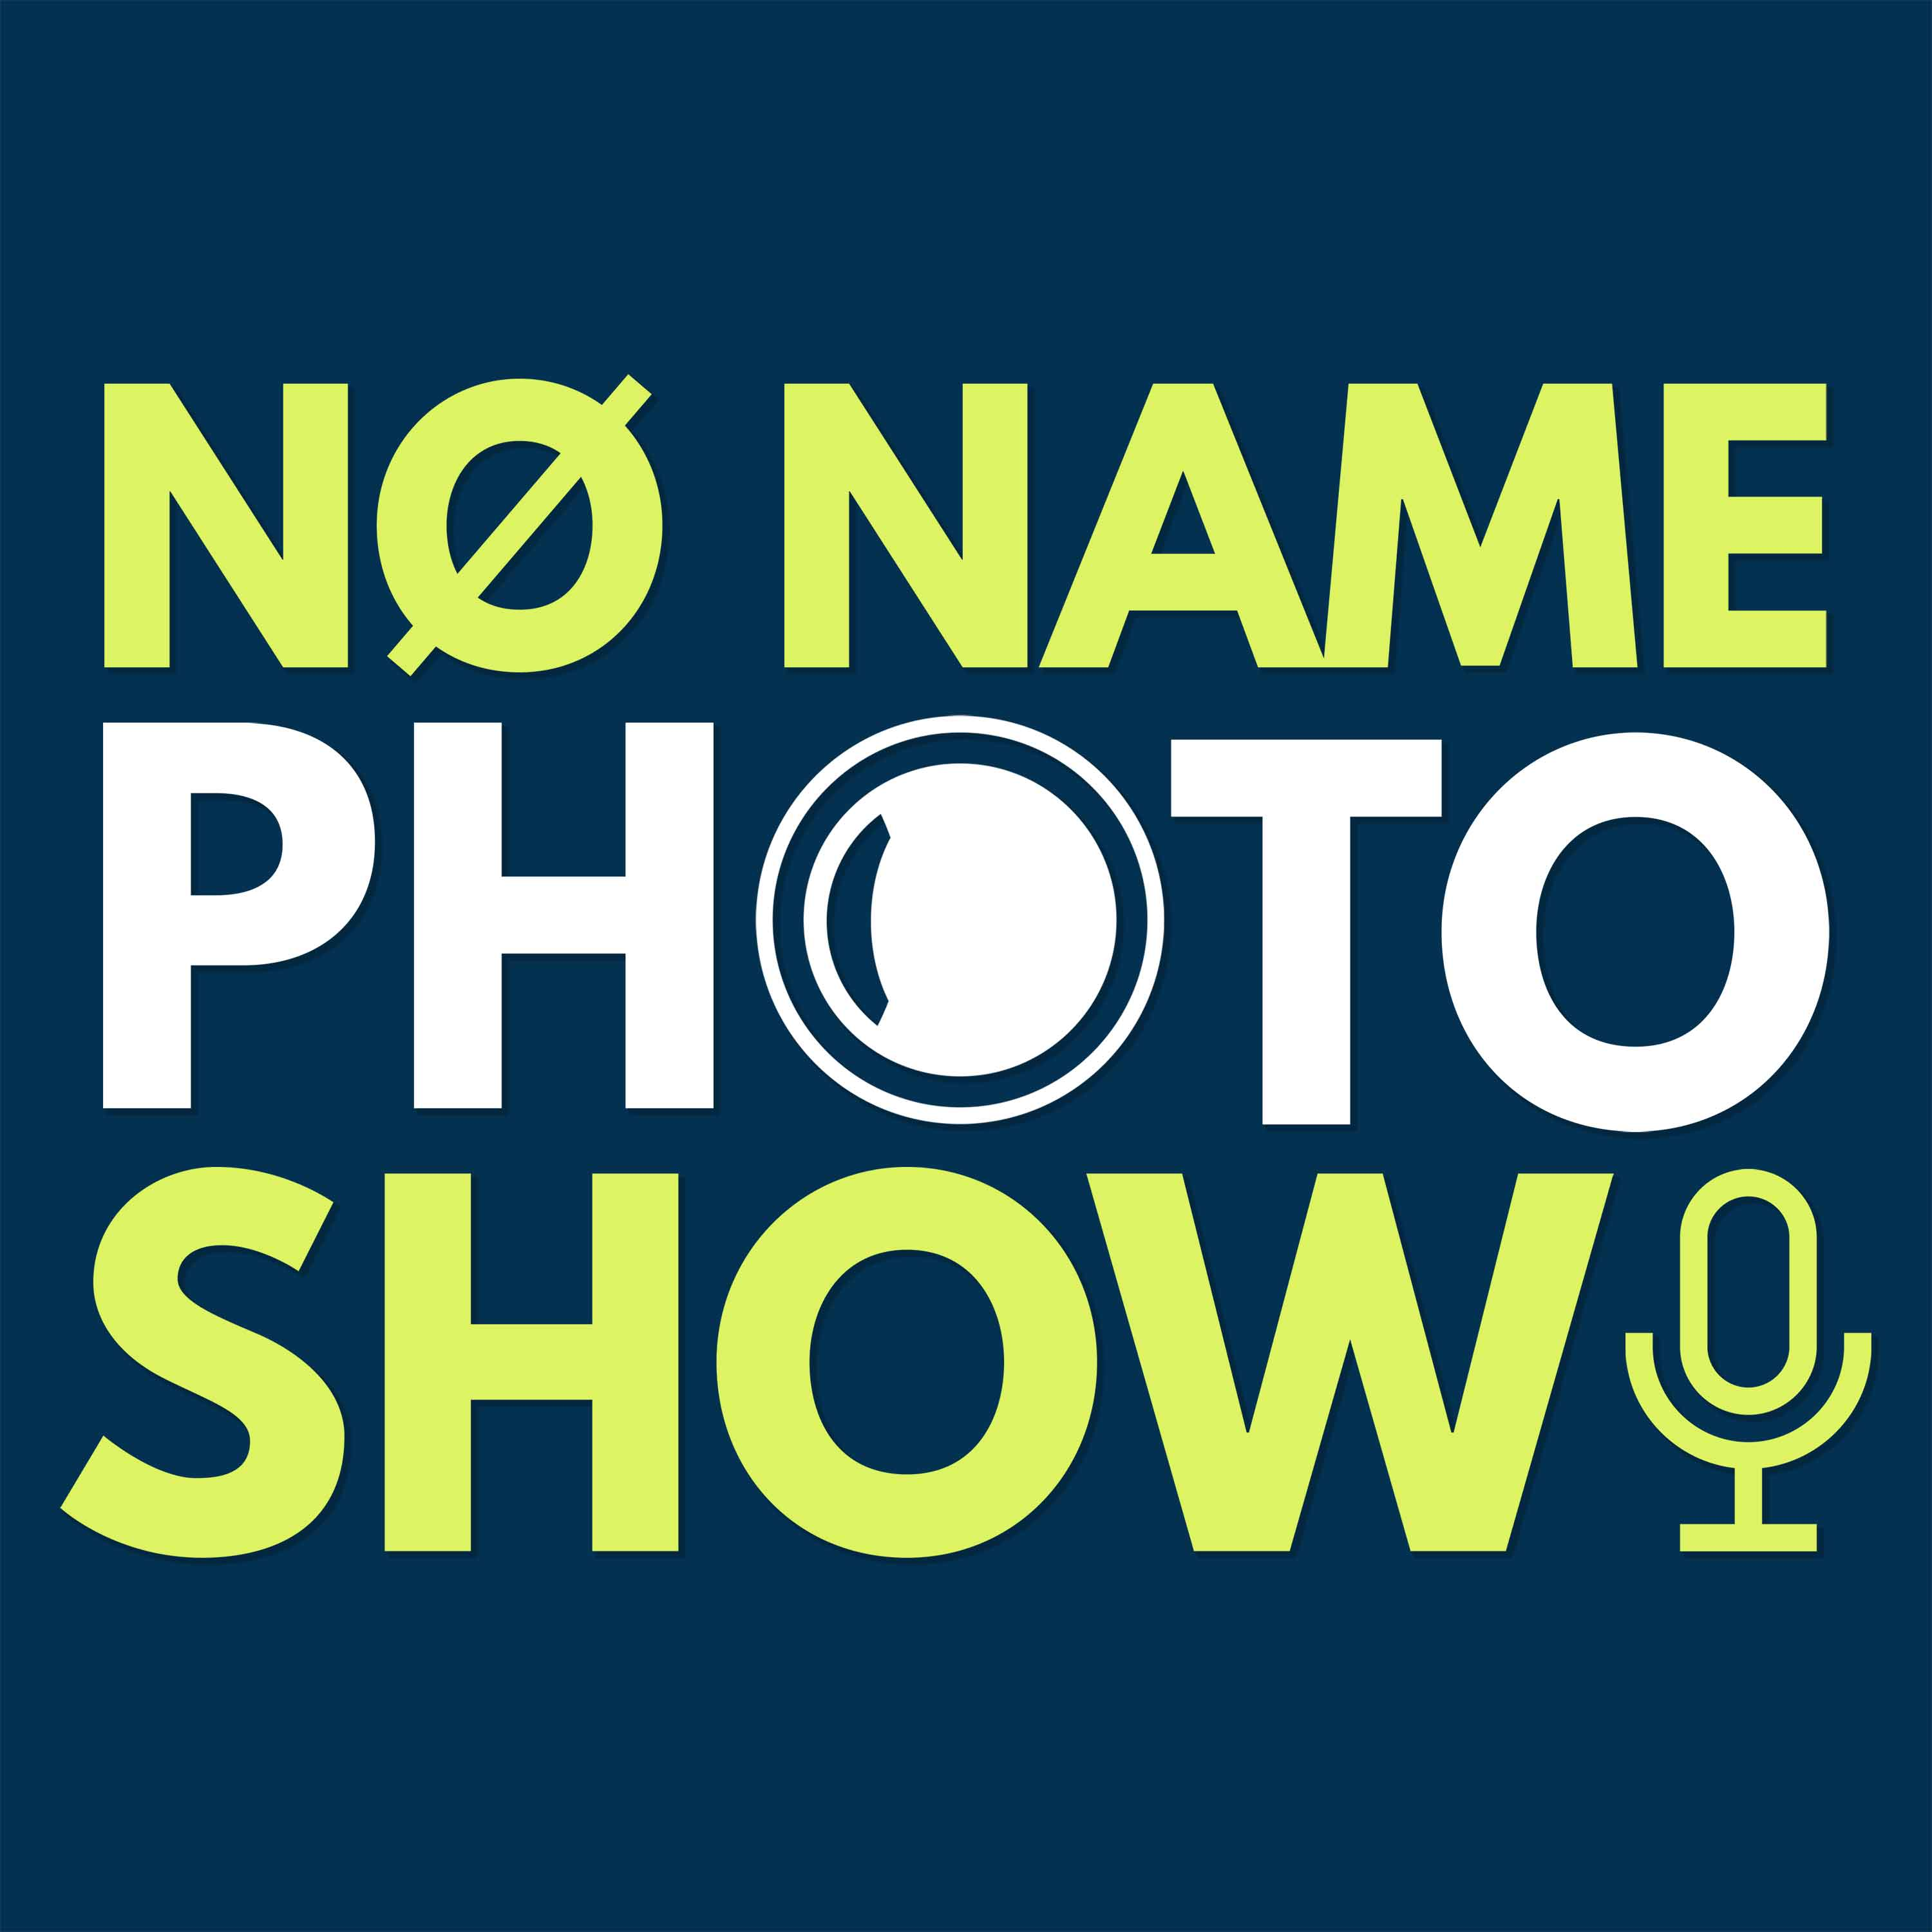 Ep. 041: Did Ya Hear About That New Camera?